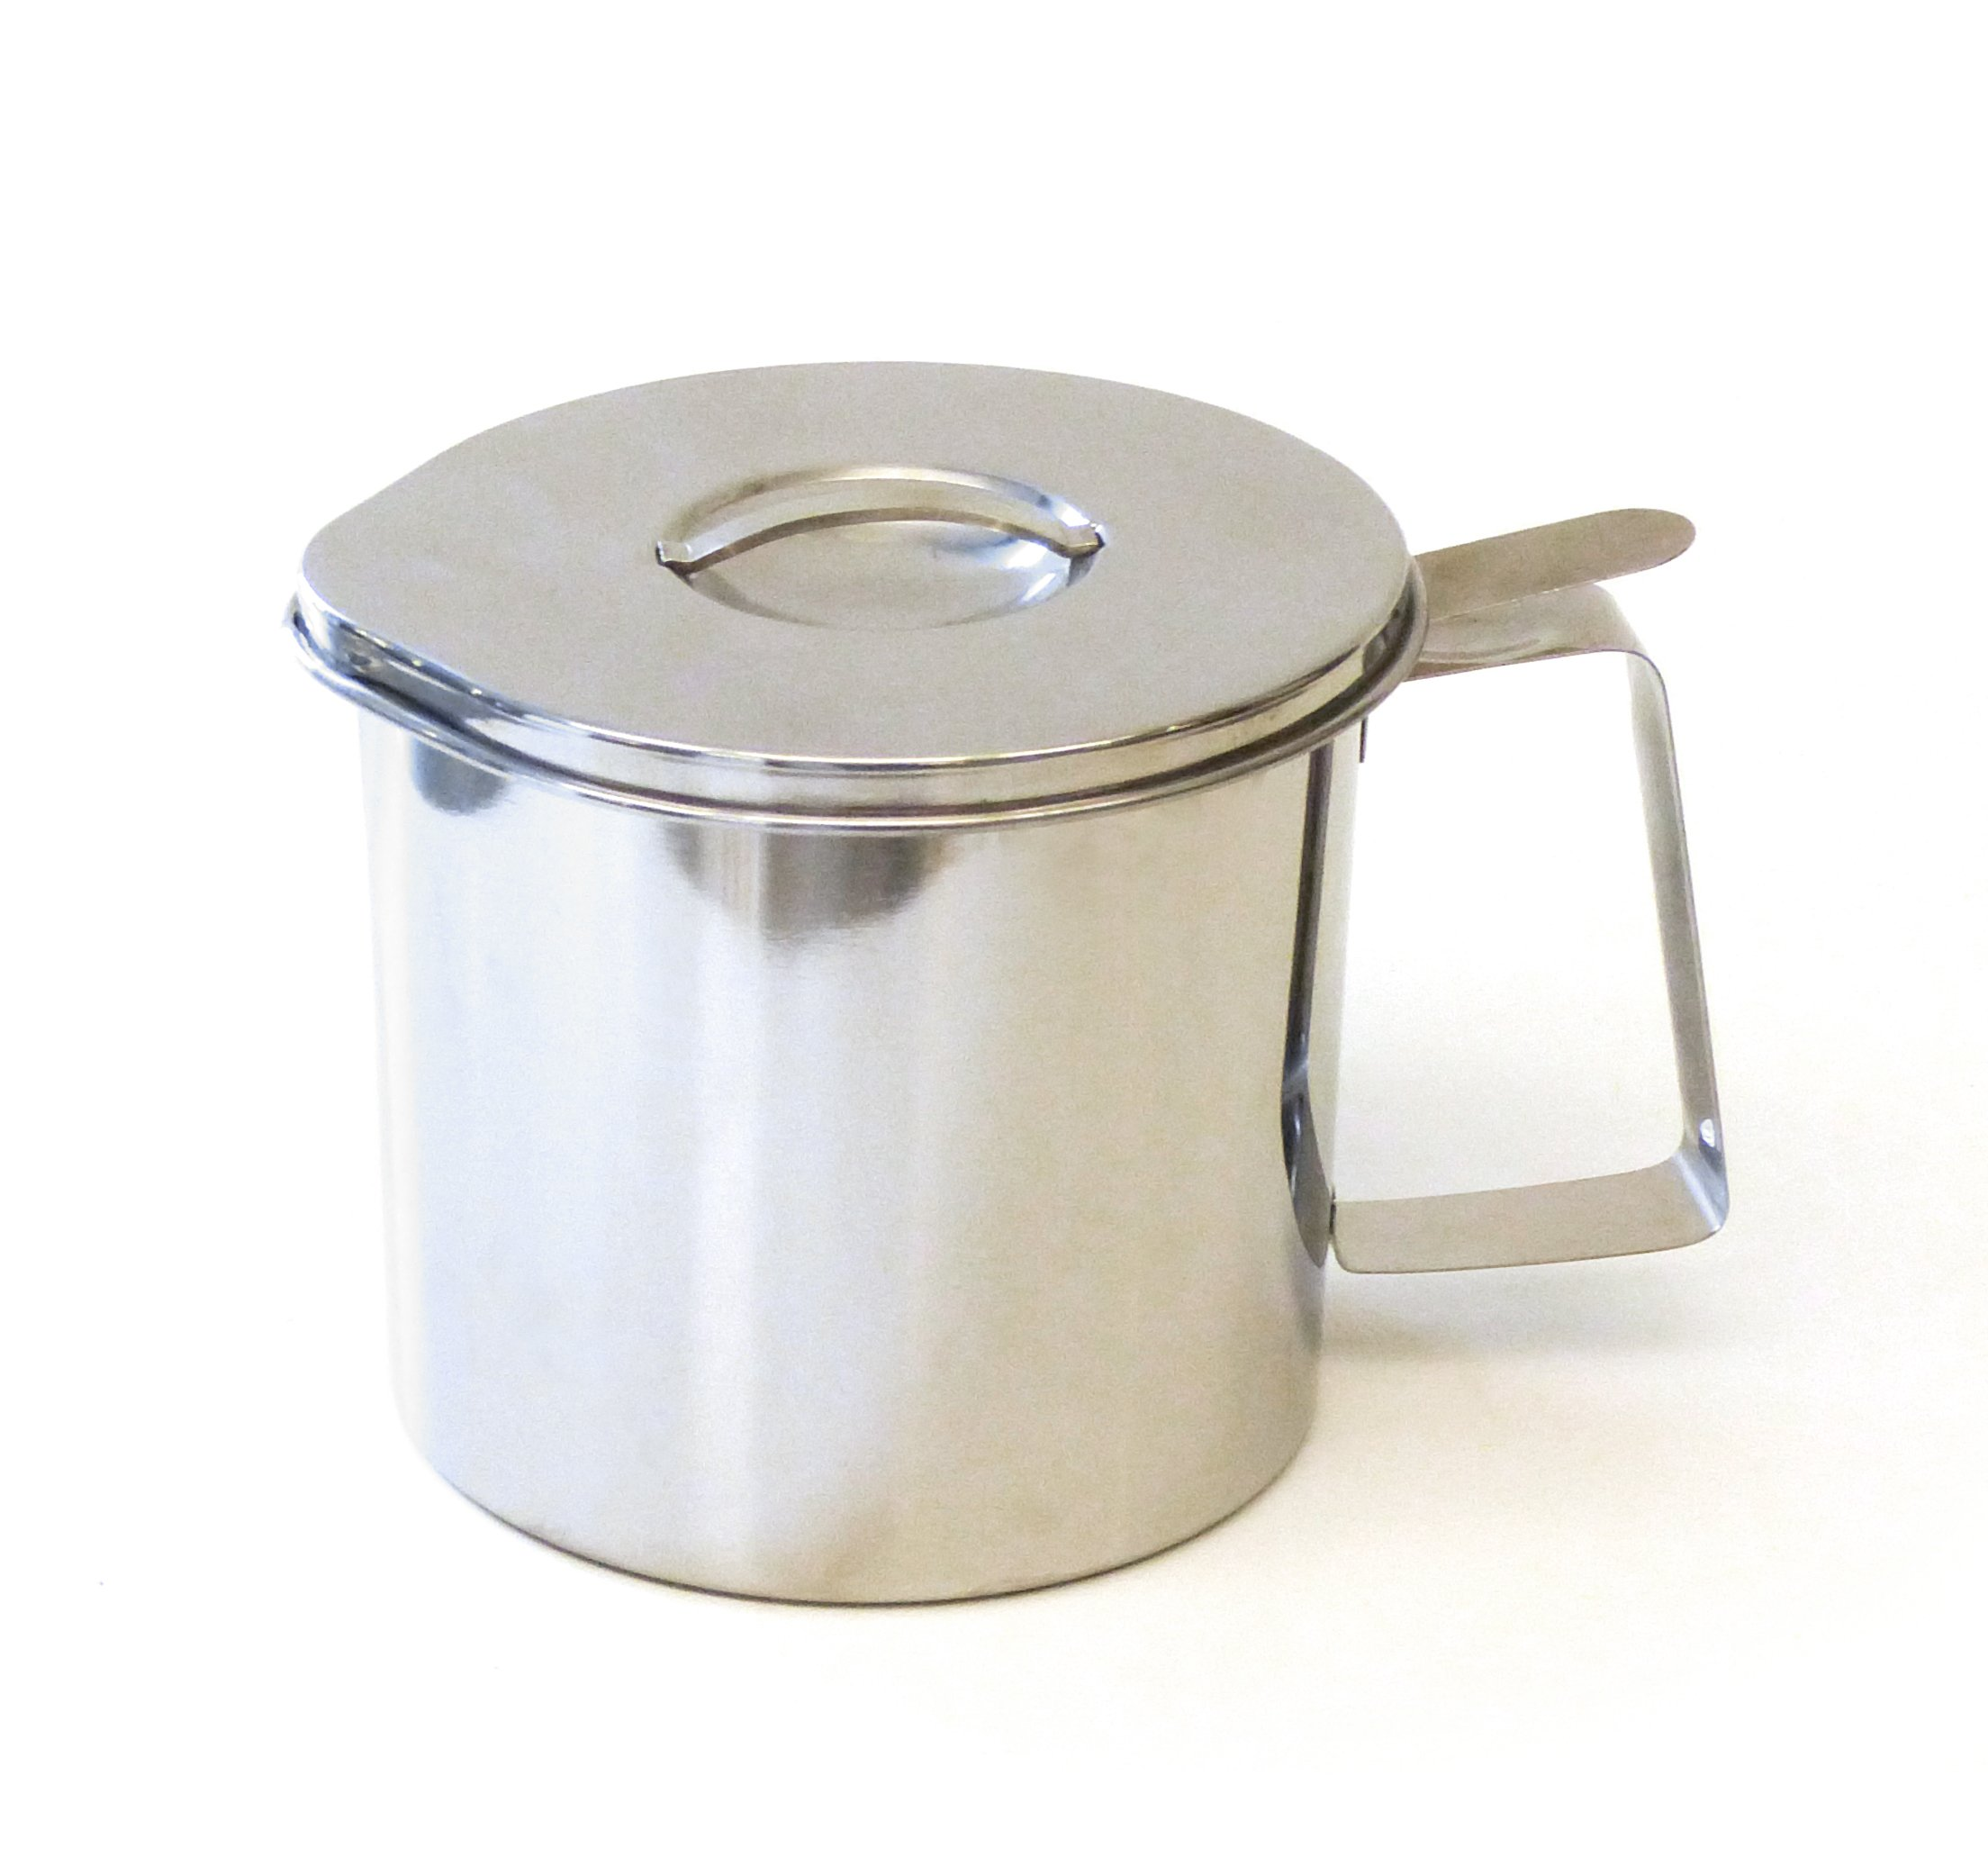 RSVP Endurance Stainless Steel Fryer's Friend (4-Cup)